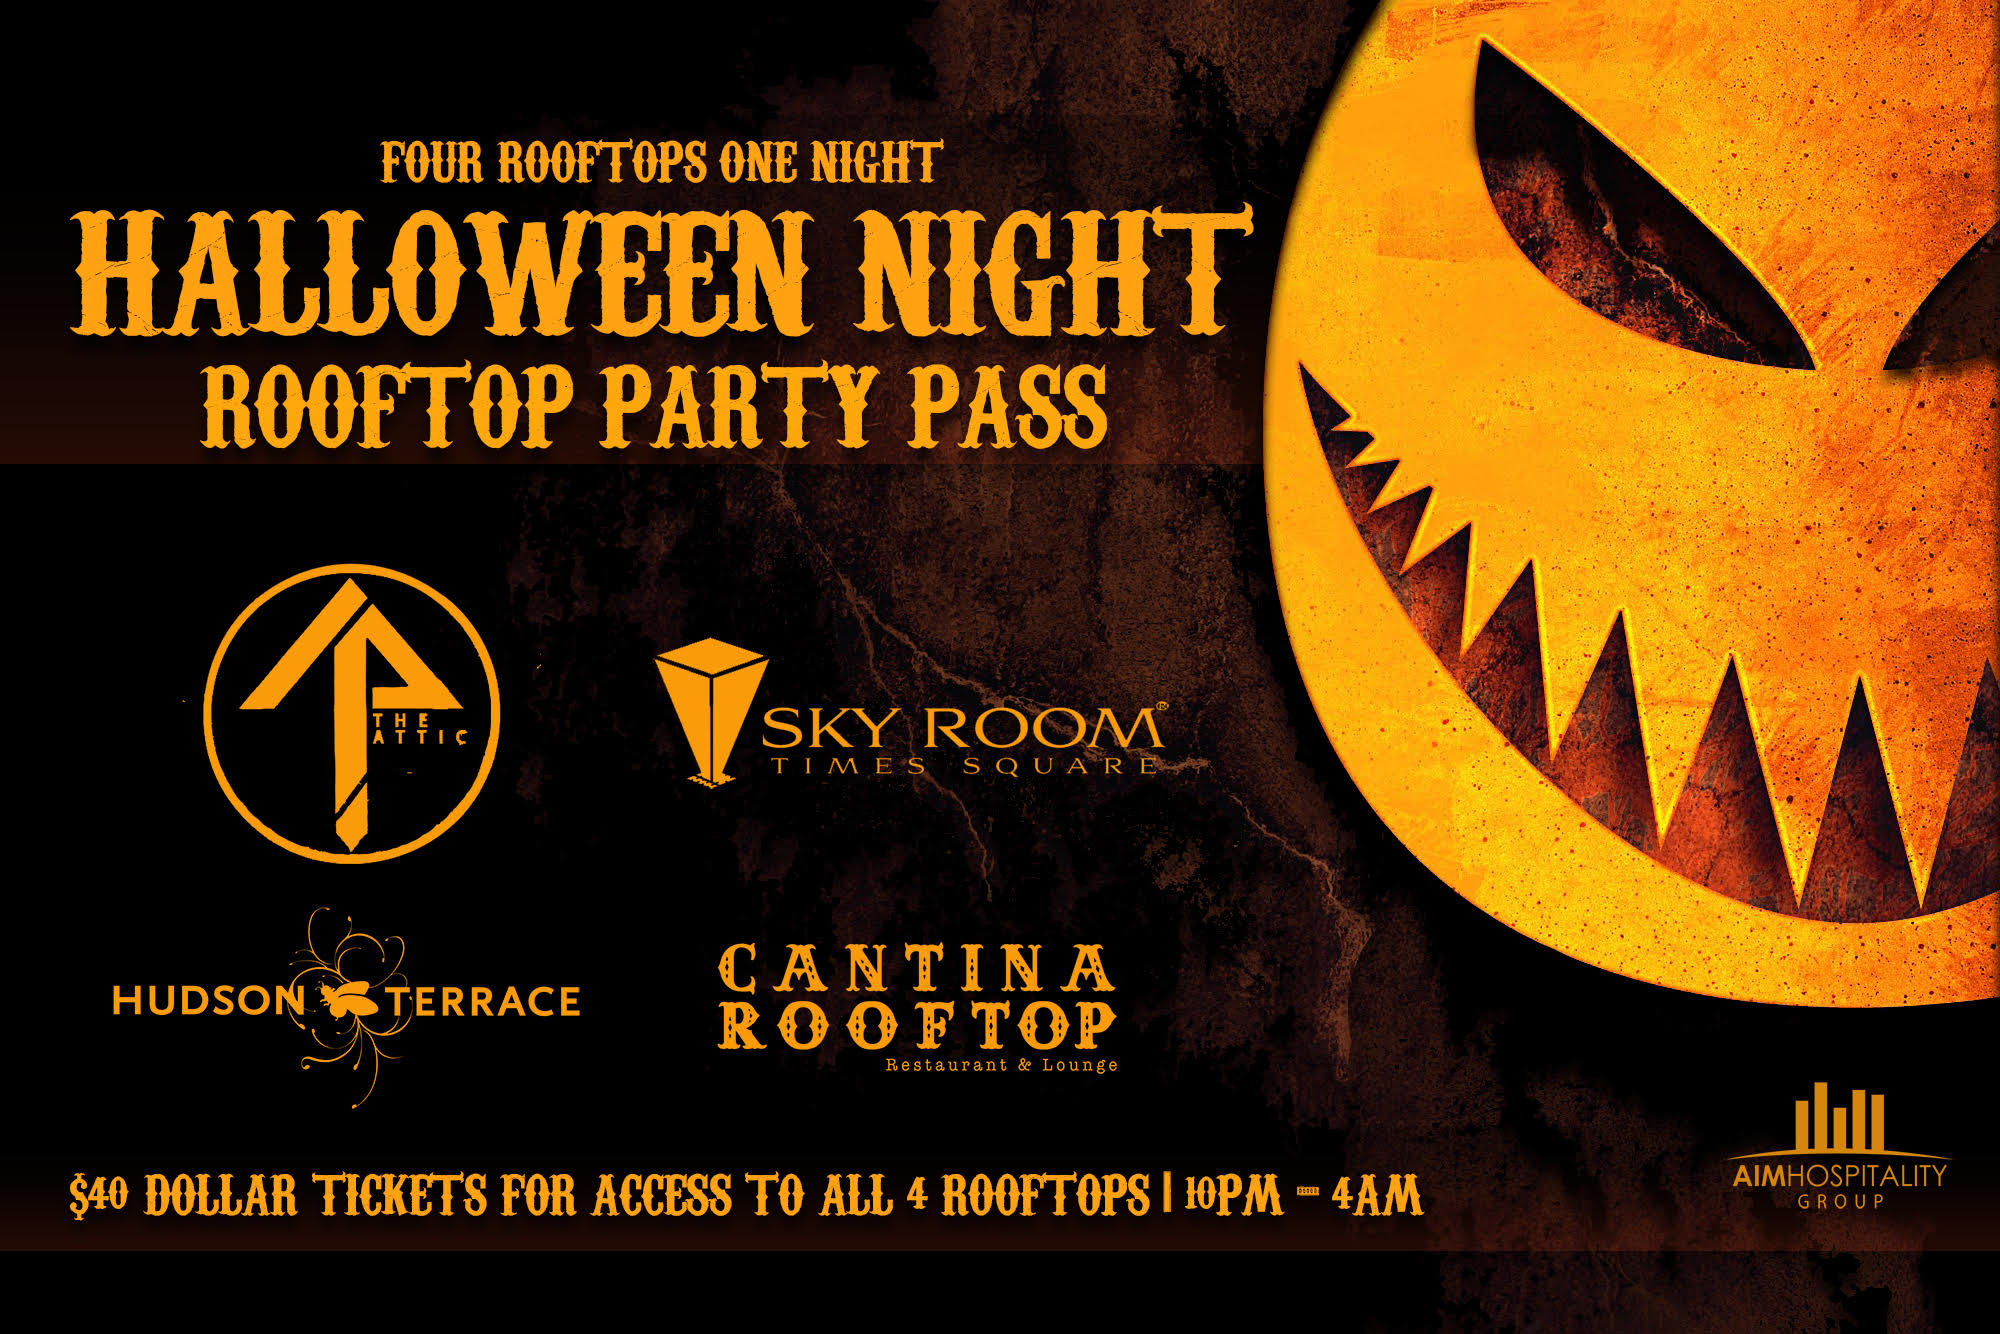 Halloween in NYC - Rooftop Party Pass! (Mid-Town) - Tickets ...